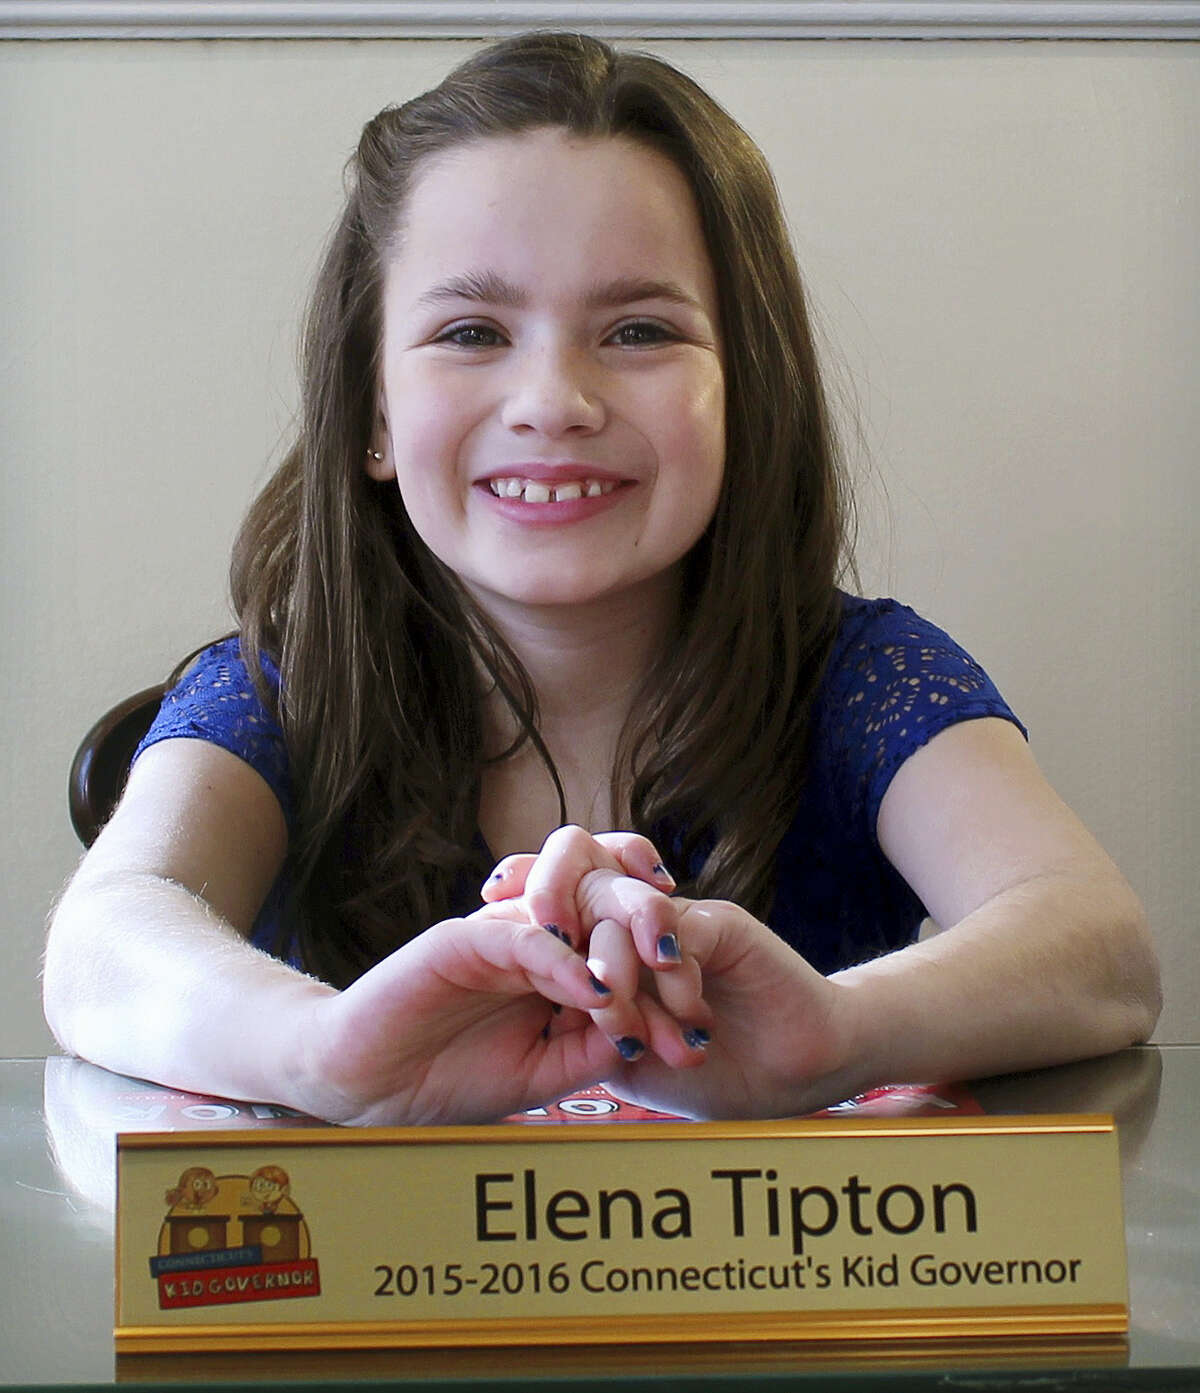 In this Jan, 29 photo, Elena Tipton of East Hartford poses in the former governor's office at Connecticut's Old State House in Hartford. Elena, 11, was elected as Connecticut's kid governor in 2015.